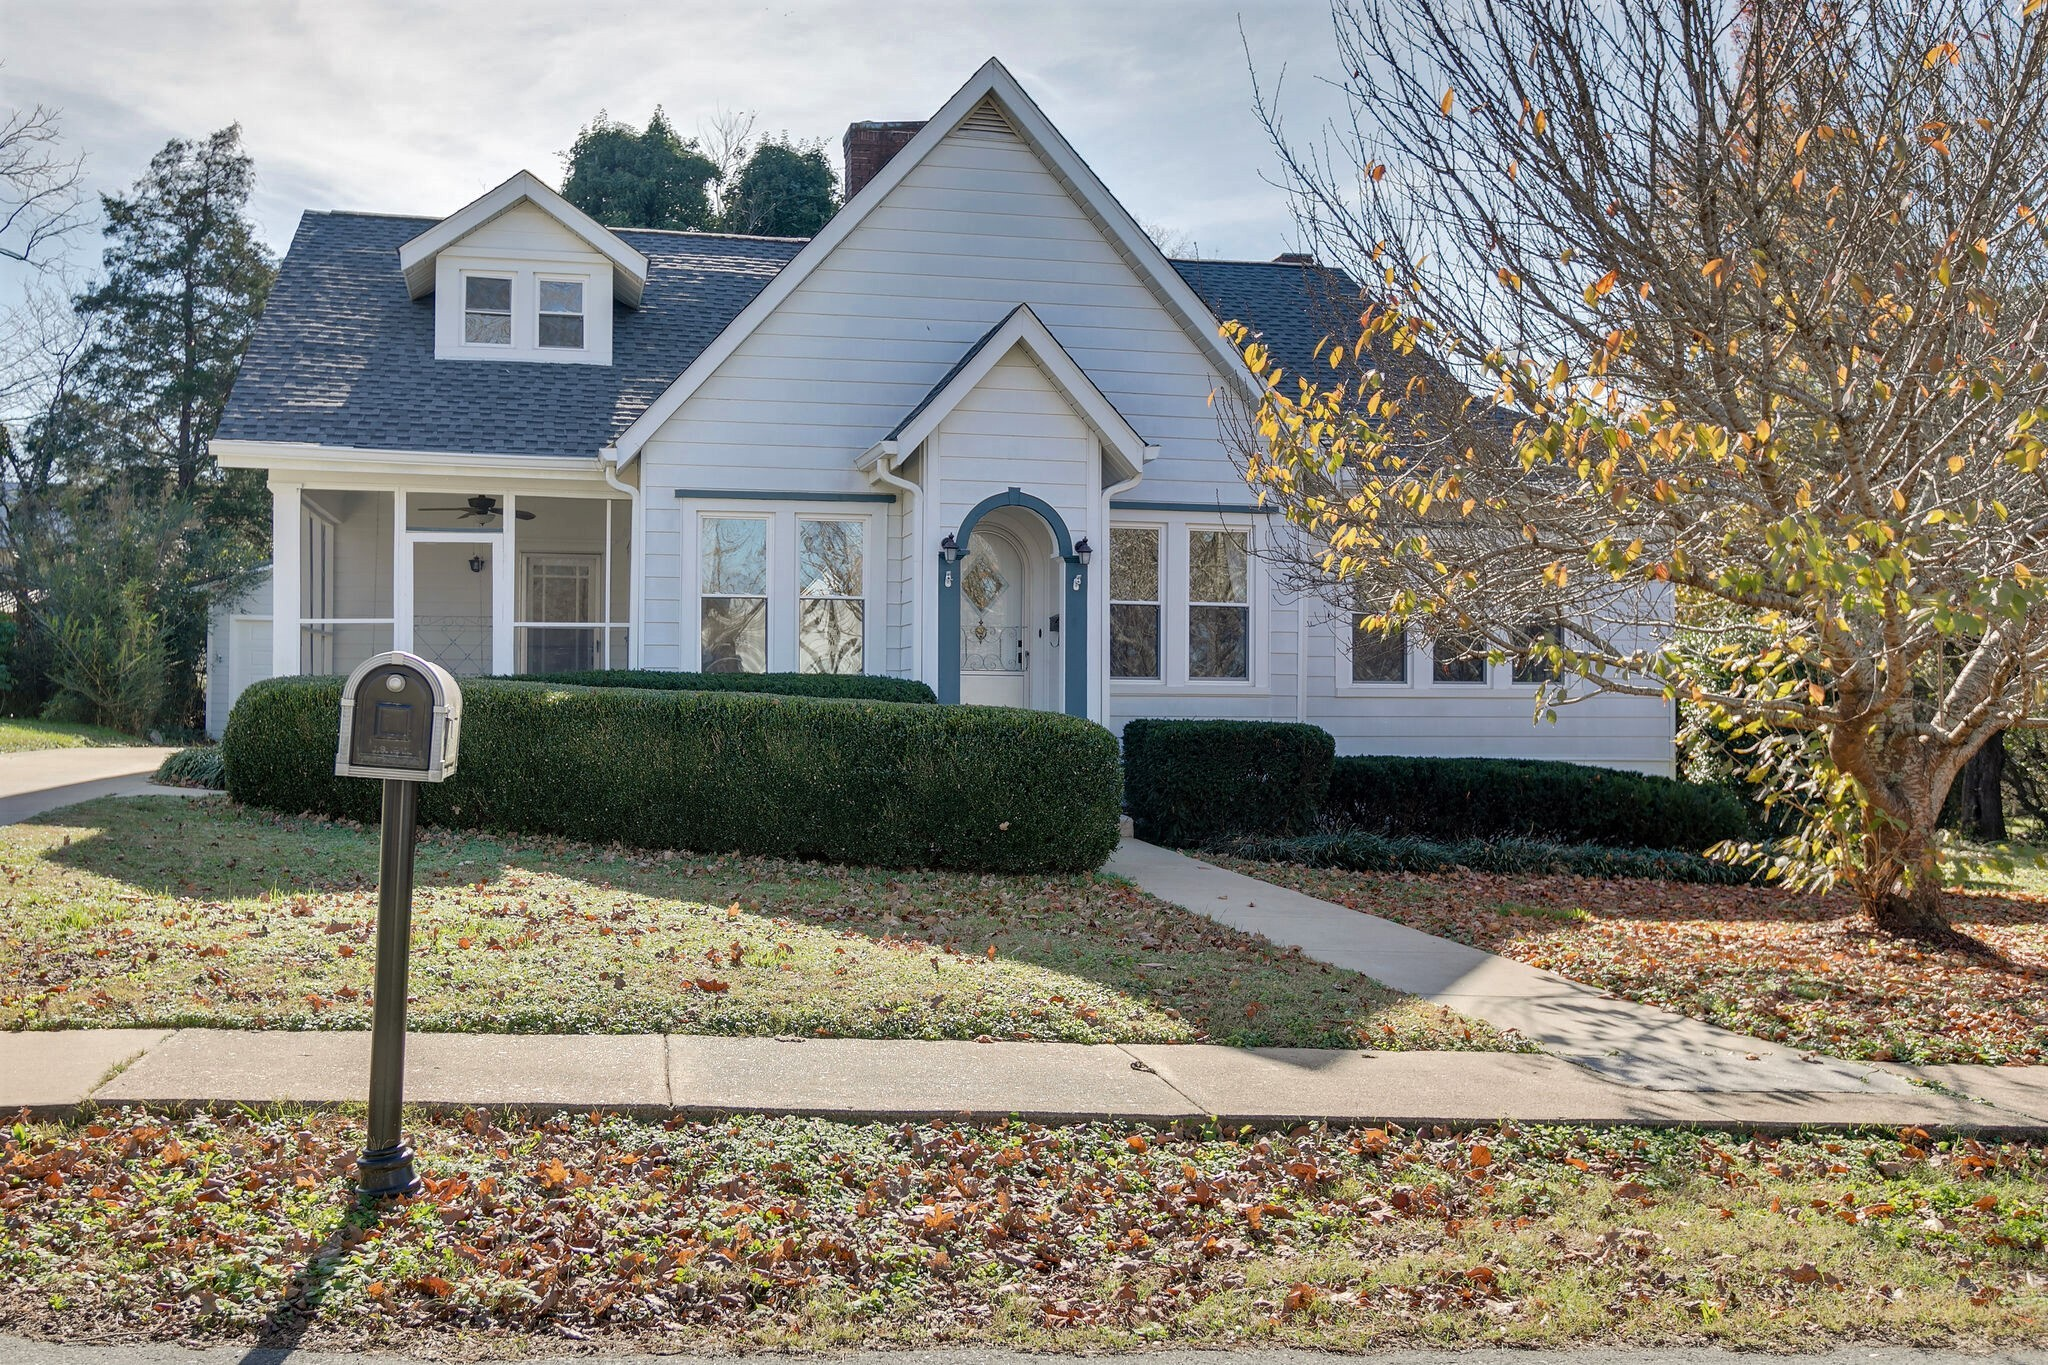 115 Perry St Property Photo - Centerville, TN real estate listing